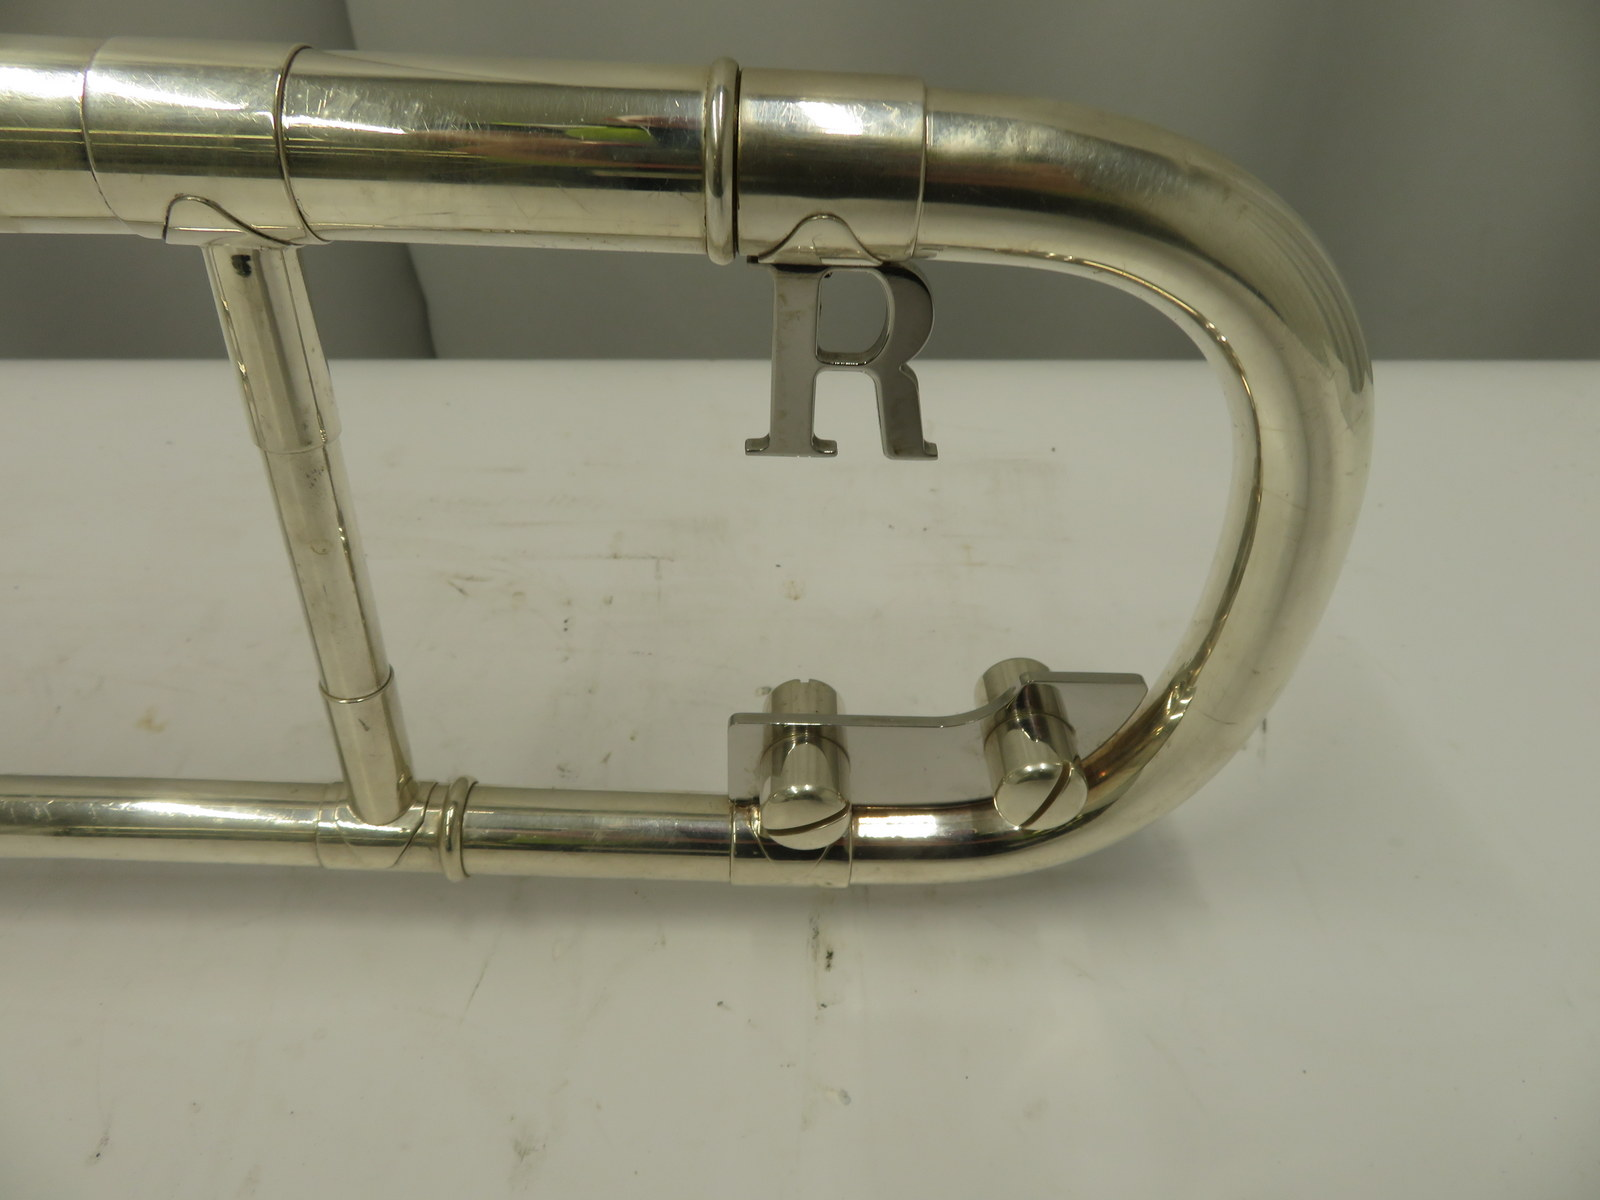 Rath R3 trombone with case. Serial number: R3043. - Image 5 of 14